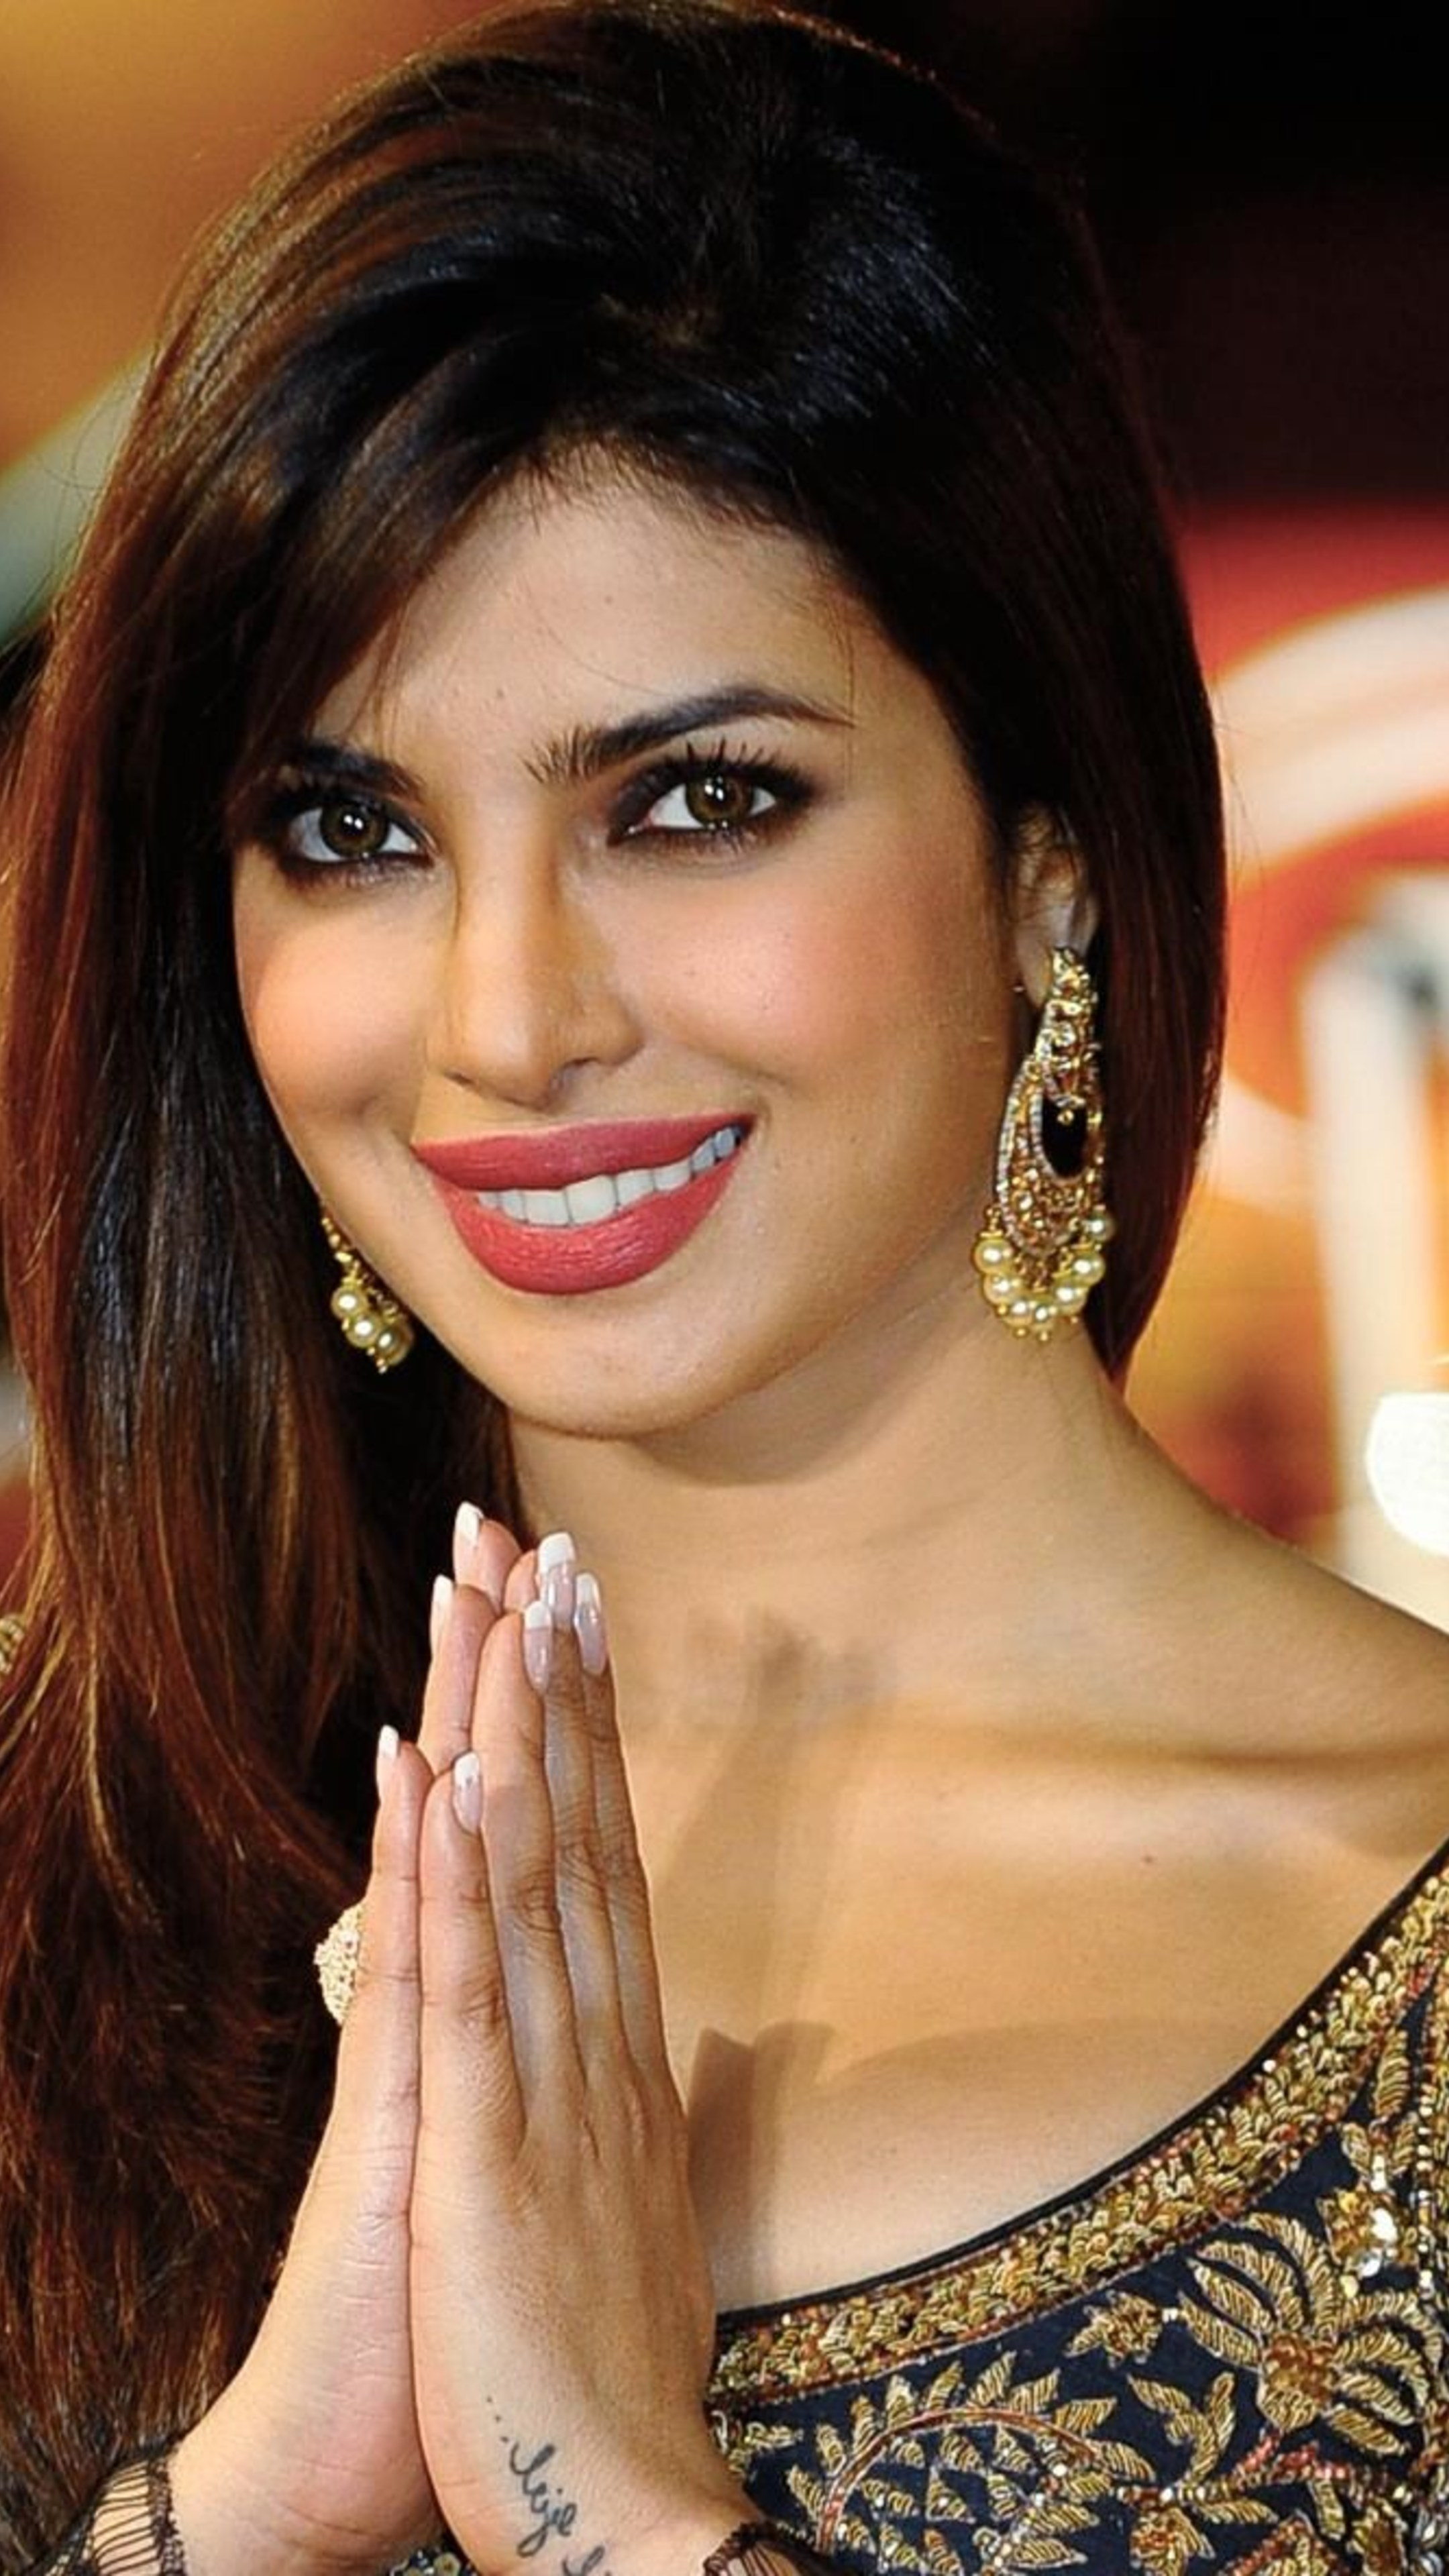 priyanka_chopra_2018_desi_girls_mobile_wallpaper.jpg